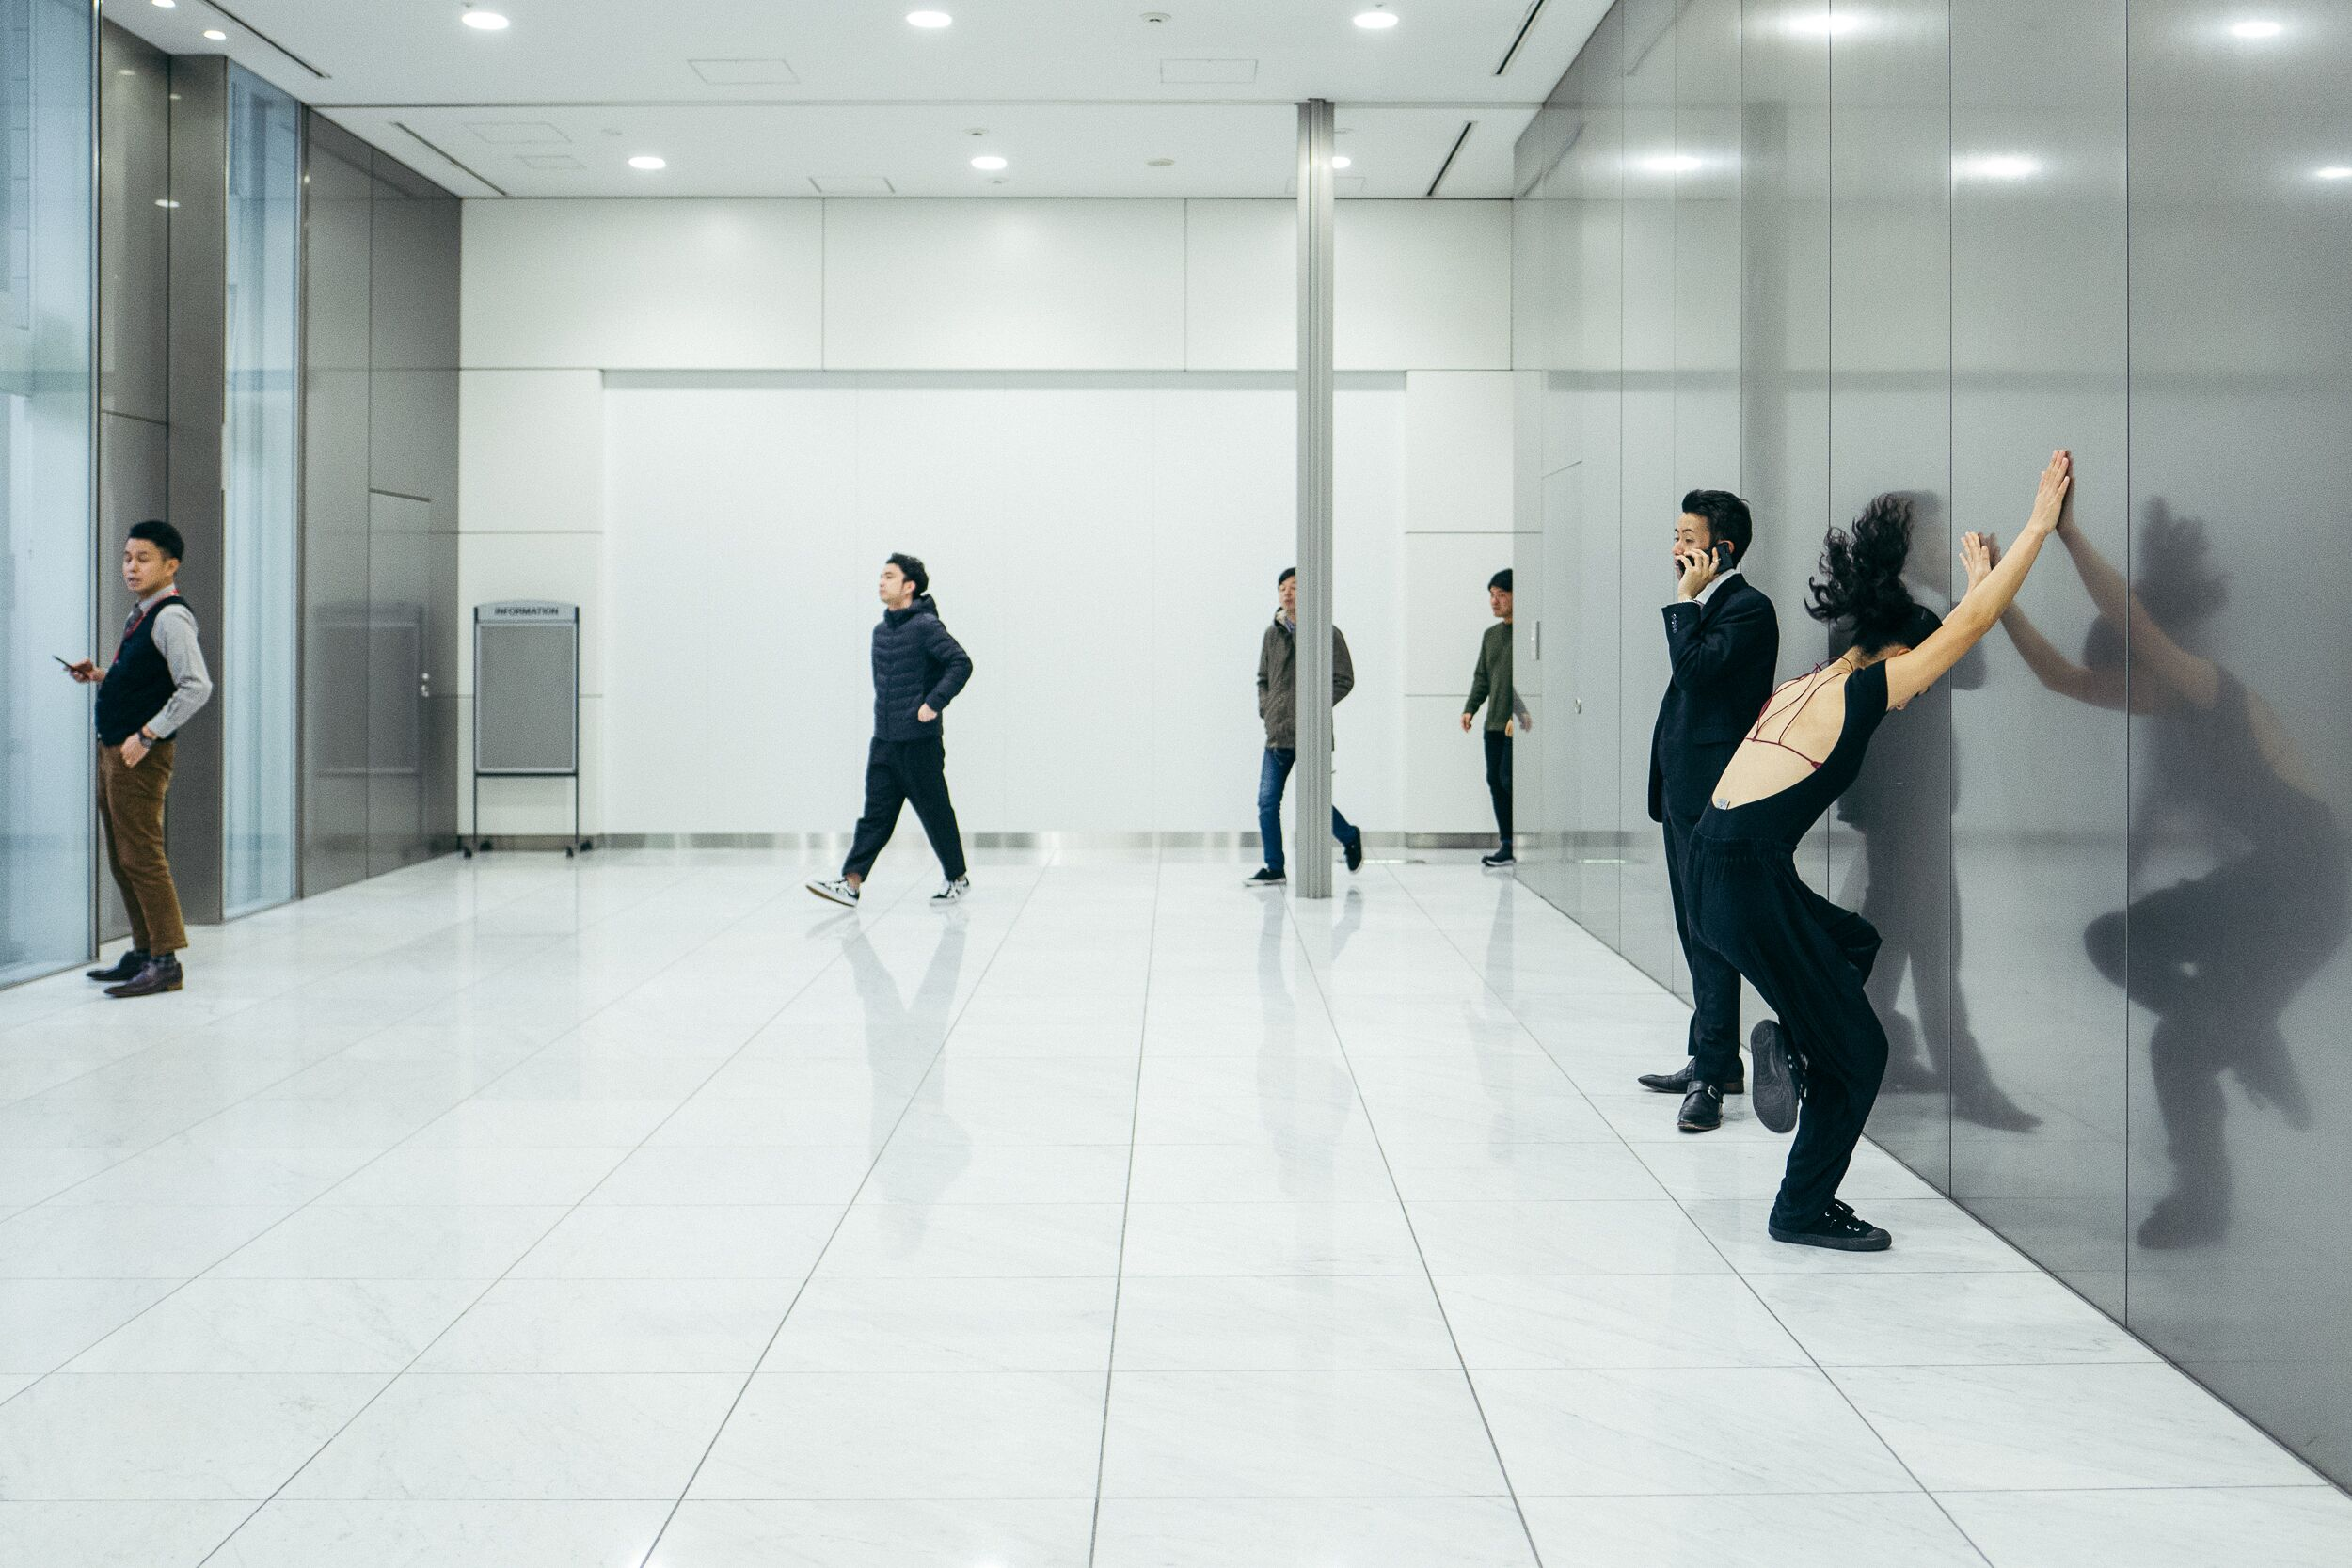 Dancing in the office in Shibuya disctrict, Tokyo